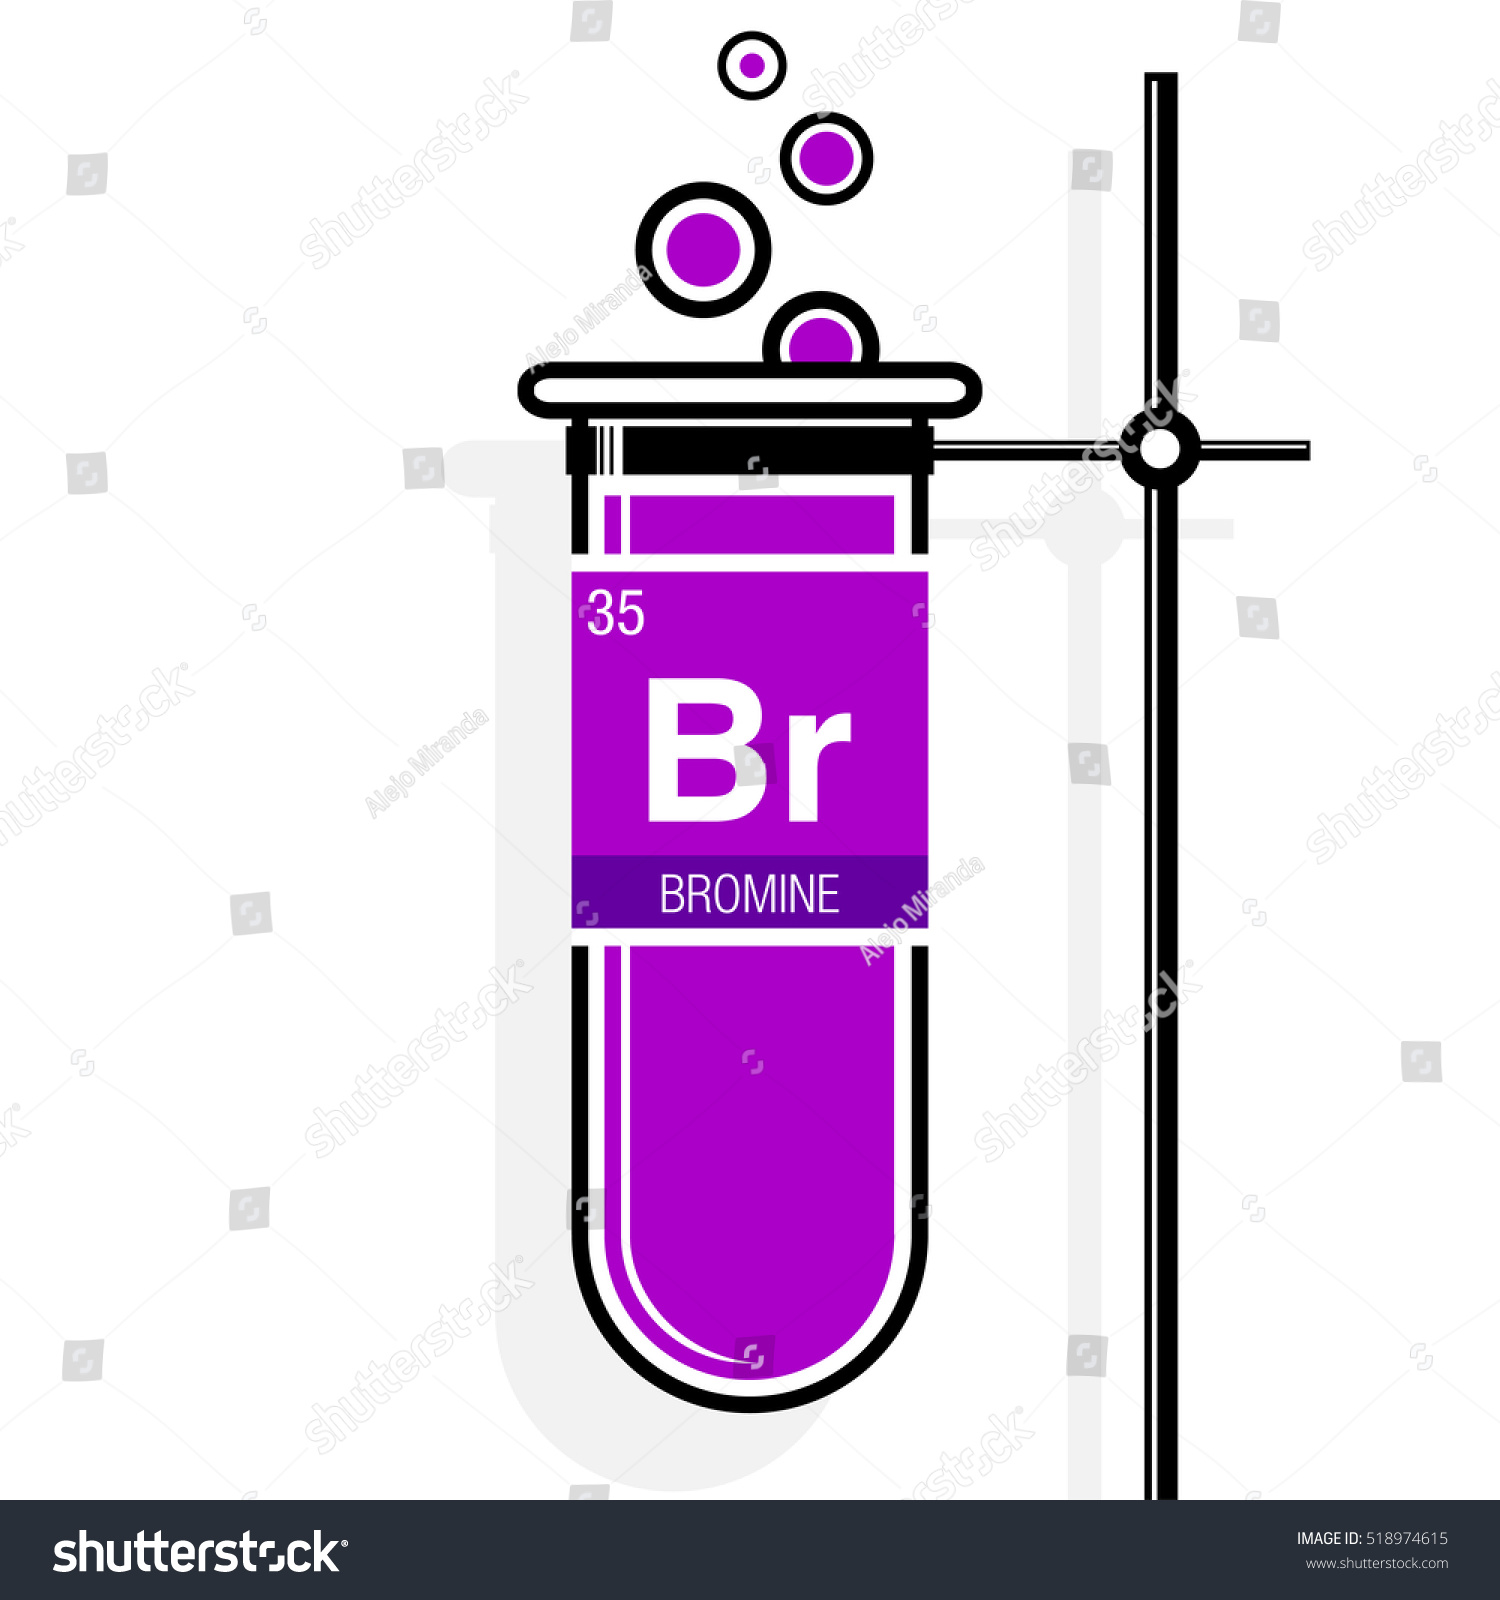 Bromine symbol on label magenta test stock vector 518974615 bromine symbol on label in a magenta test tube with holder element number 35 of gamestrikefo Gallery